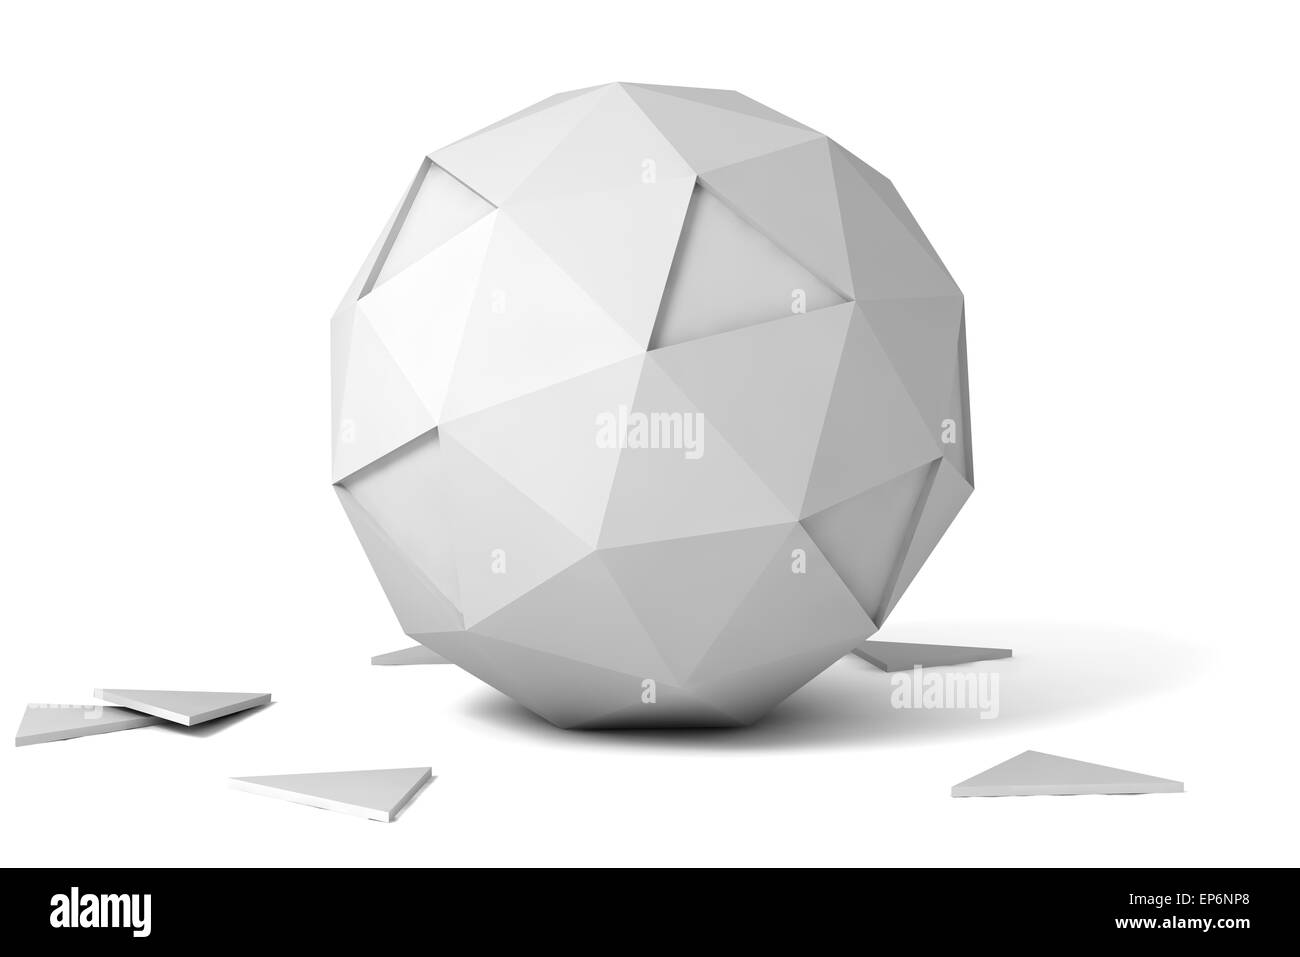 3d gray polyhedron on white background with shadow. - Stock Image